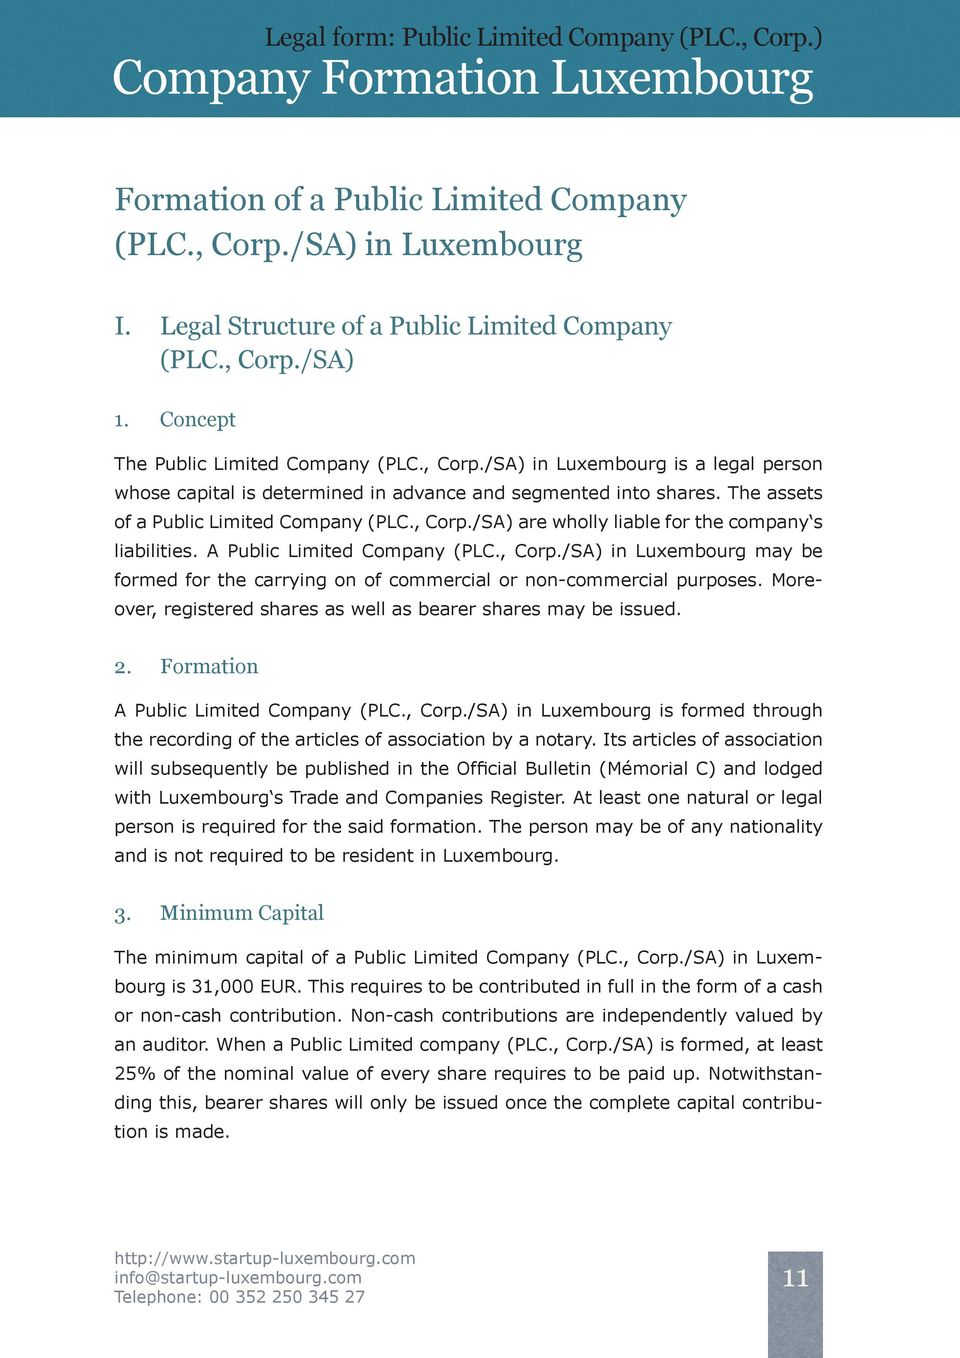 , Corp./SA) are wholly liable for the company s liabilities. A Public Limited Company (PLC., Corp./SA) in Luxembourg may be formed for the carrying on of commercial or non-commercial purposes.